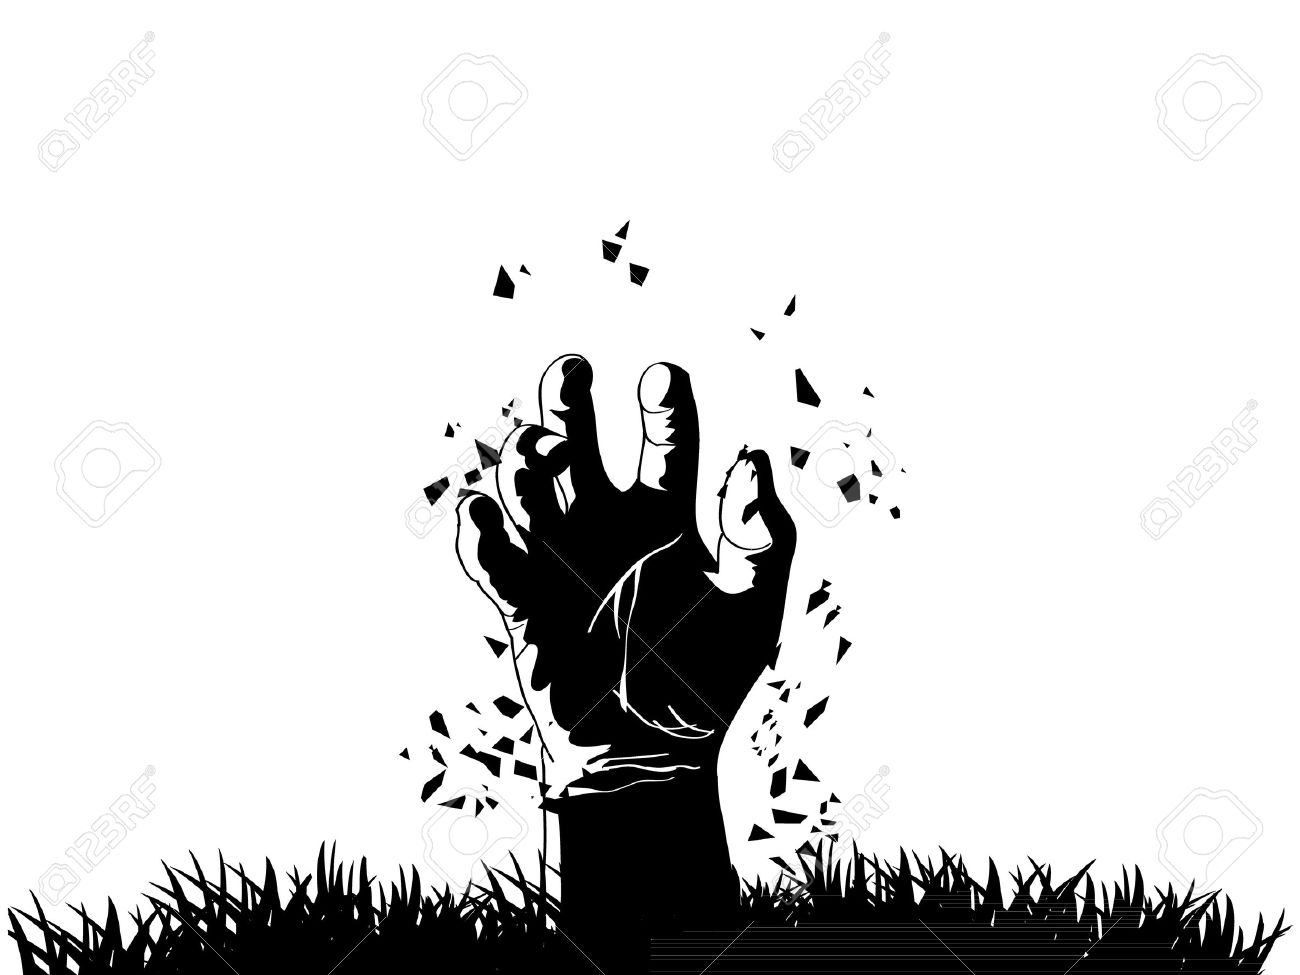 Zombie hand coming out from grave - 15805377